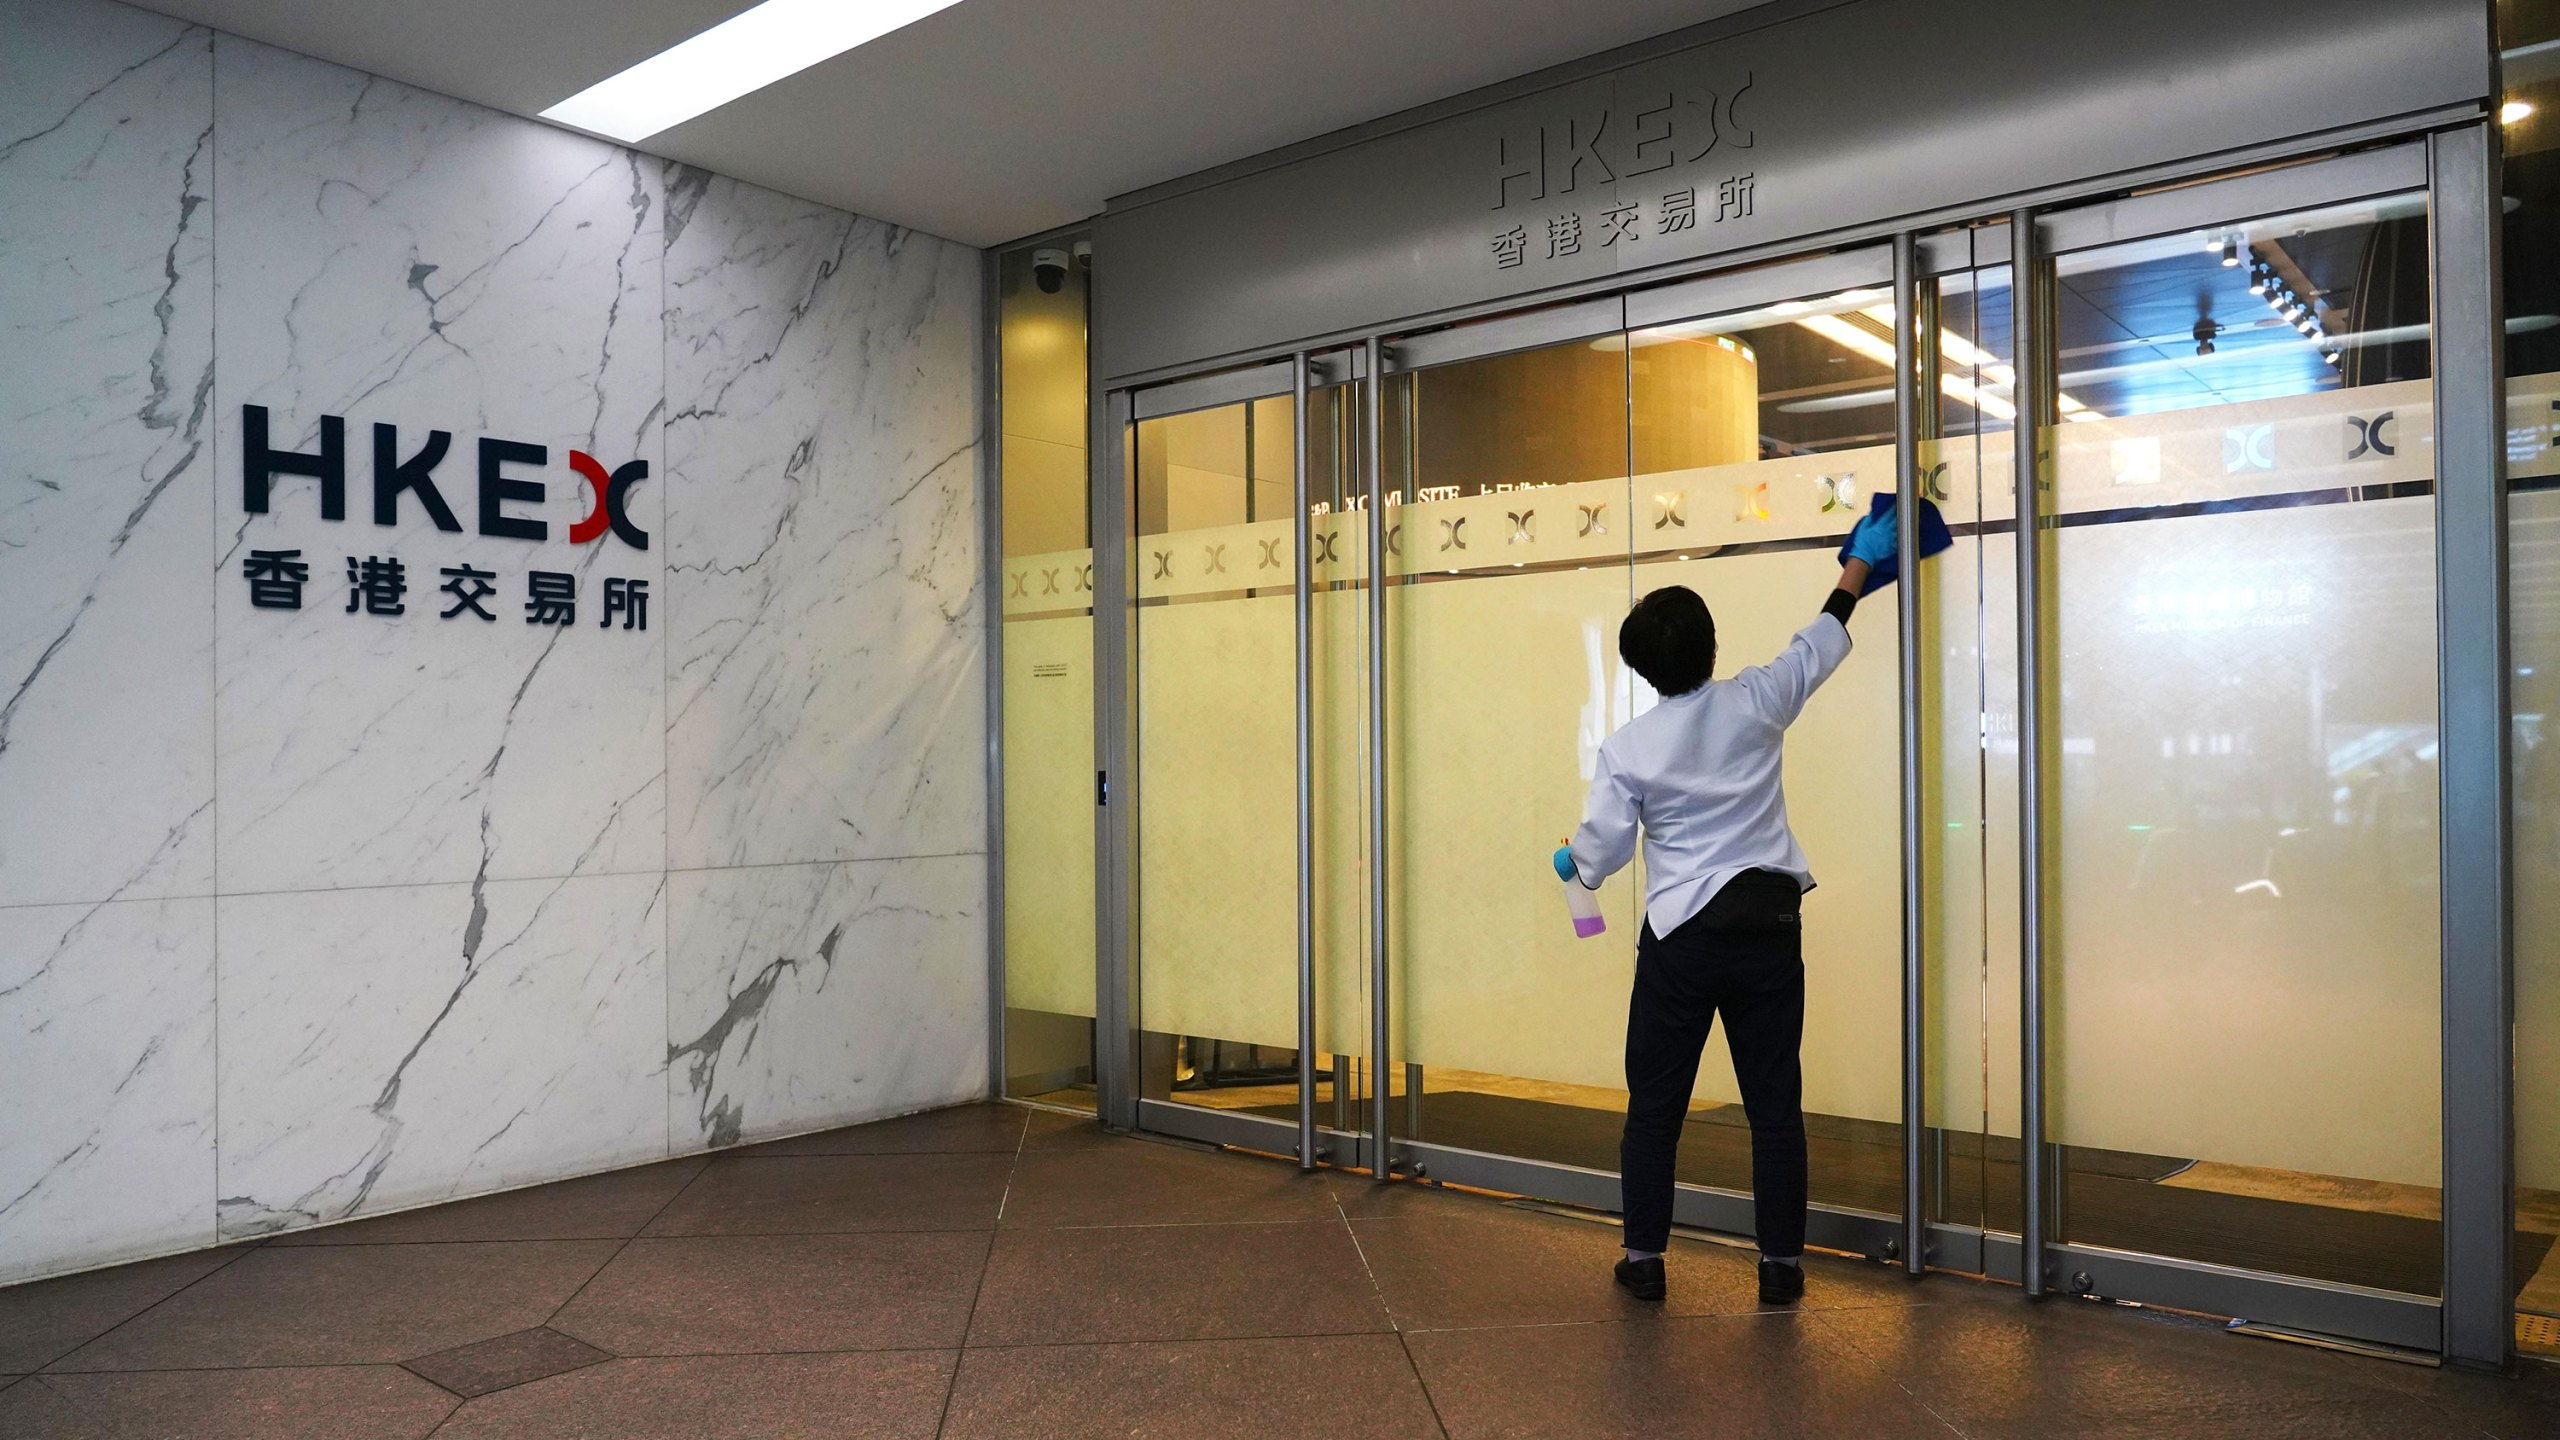 A cleaner disinfects a door of HKEX (Hong Kong Stock Exchange) Connect Hall on March 27, 2020 in Hong Kong, China. (Zhang Wei/China News Service/Getty Images)